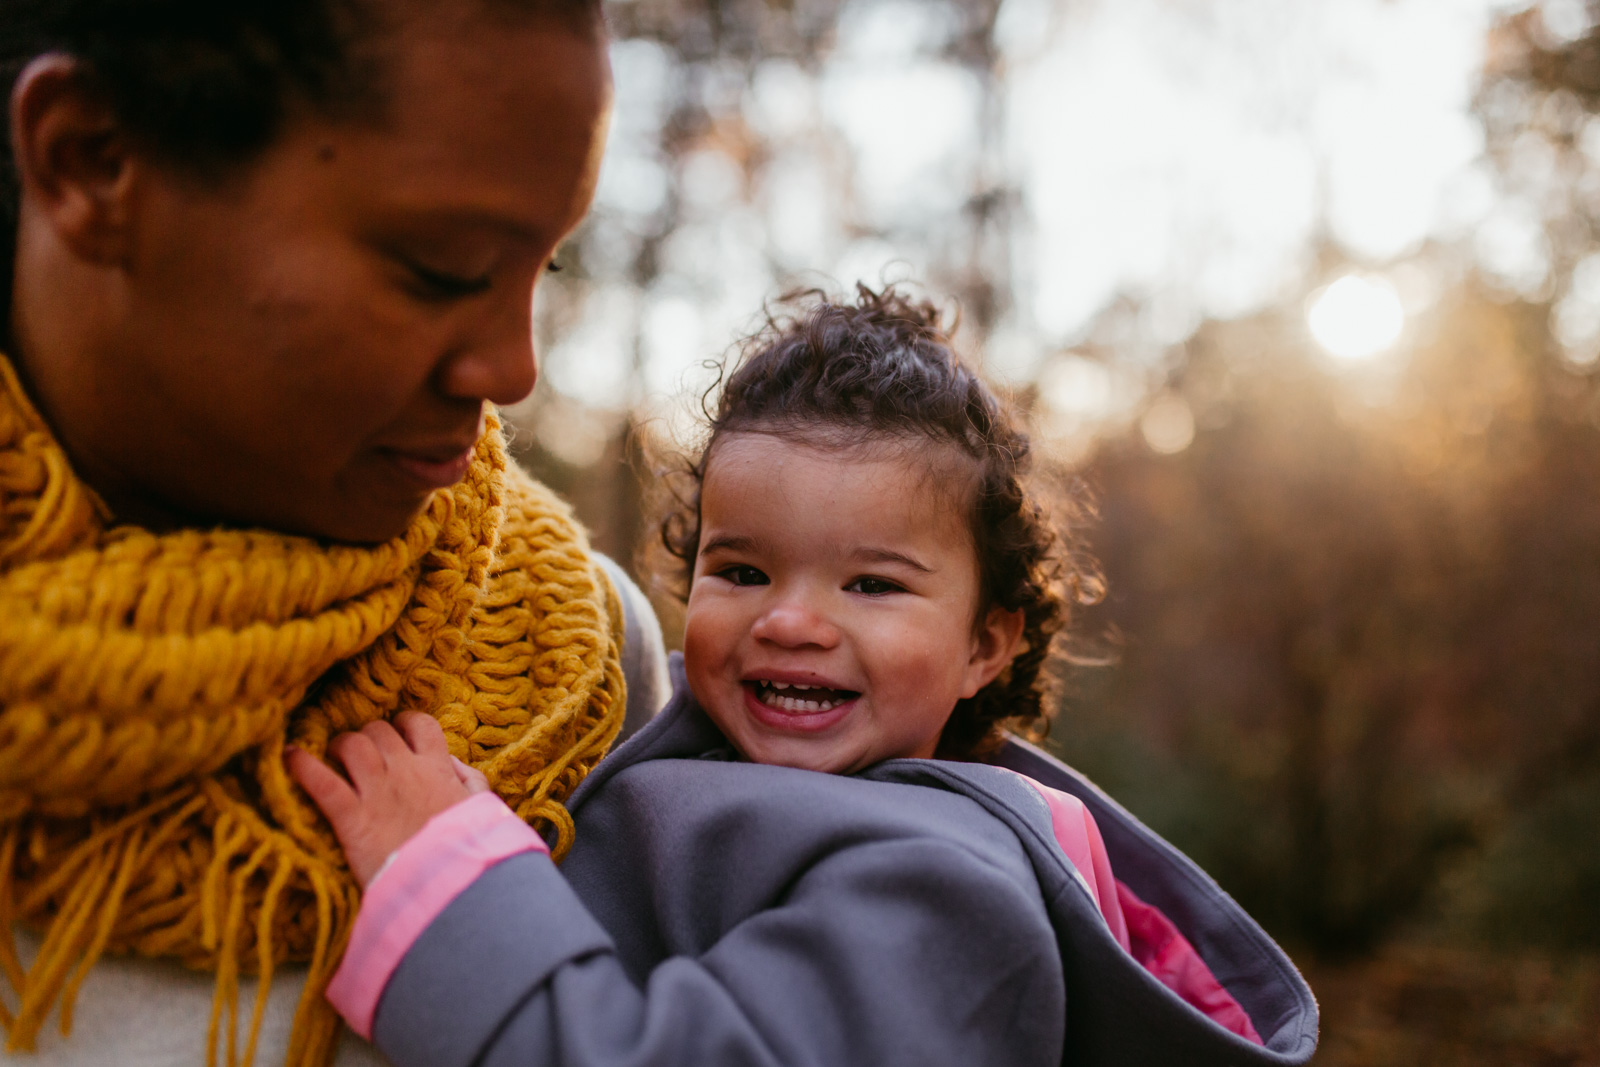 Portrait of a toddler being held by her mom at sunset  at Ellanor C. Lawrence Park in Chantilly, Virginia